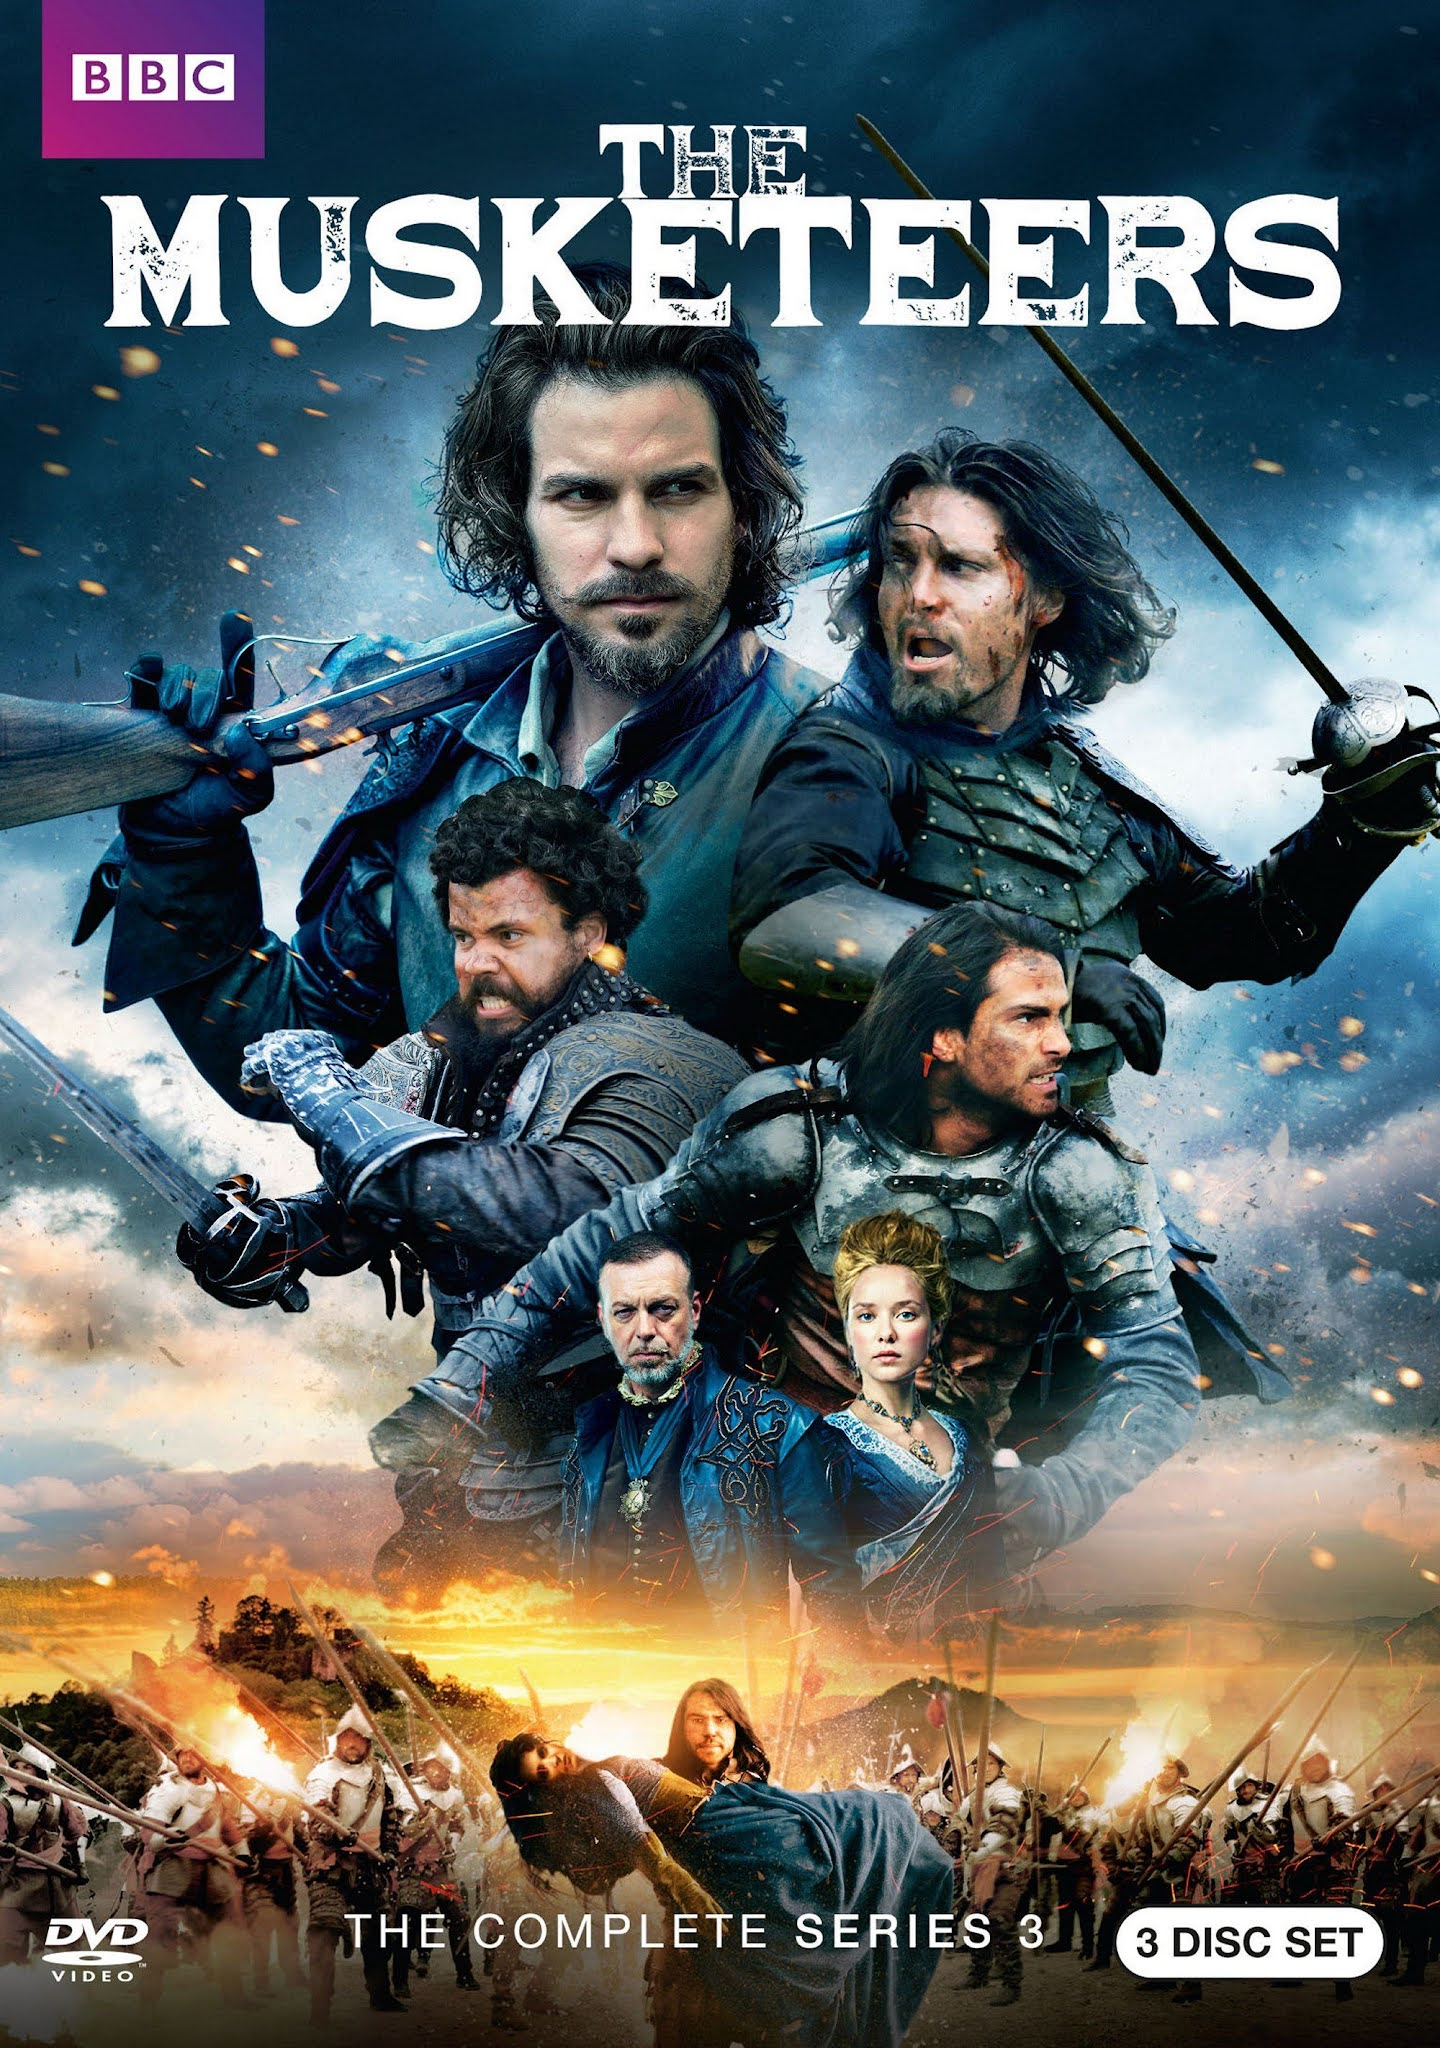 The Musketeers Serie Completa Subtitulado 720p